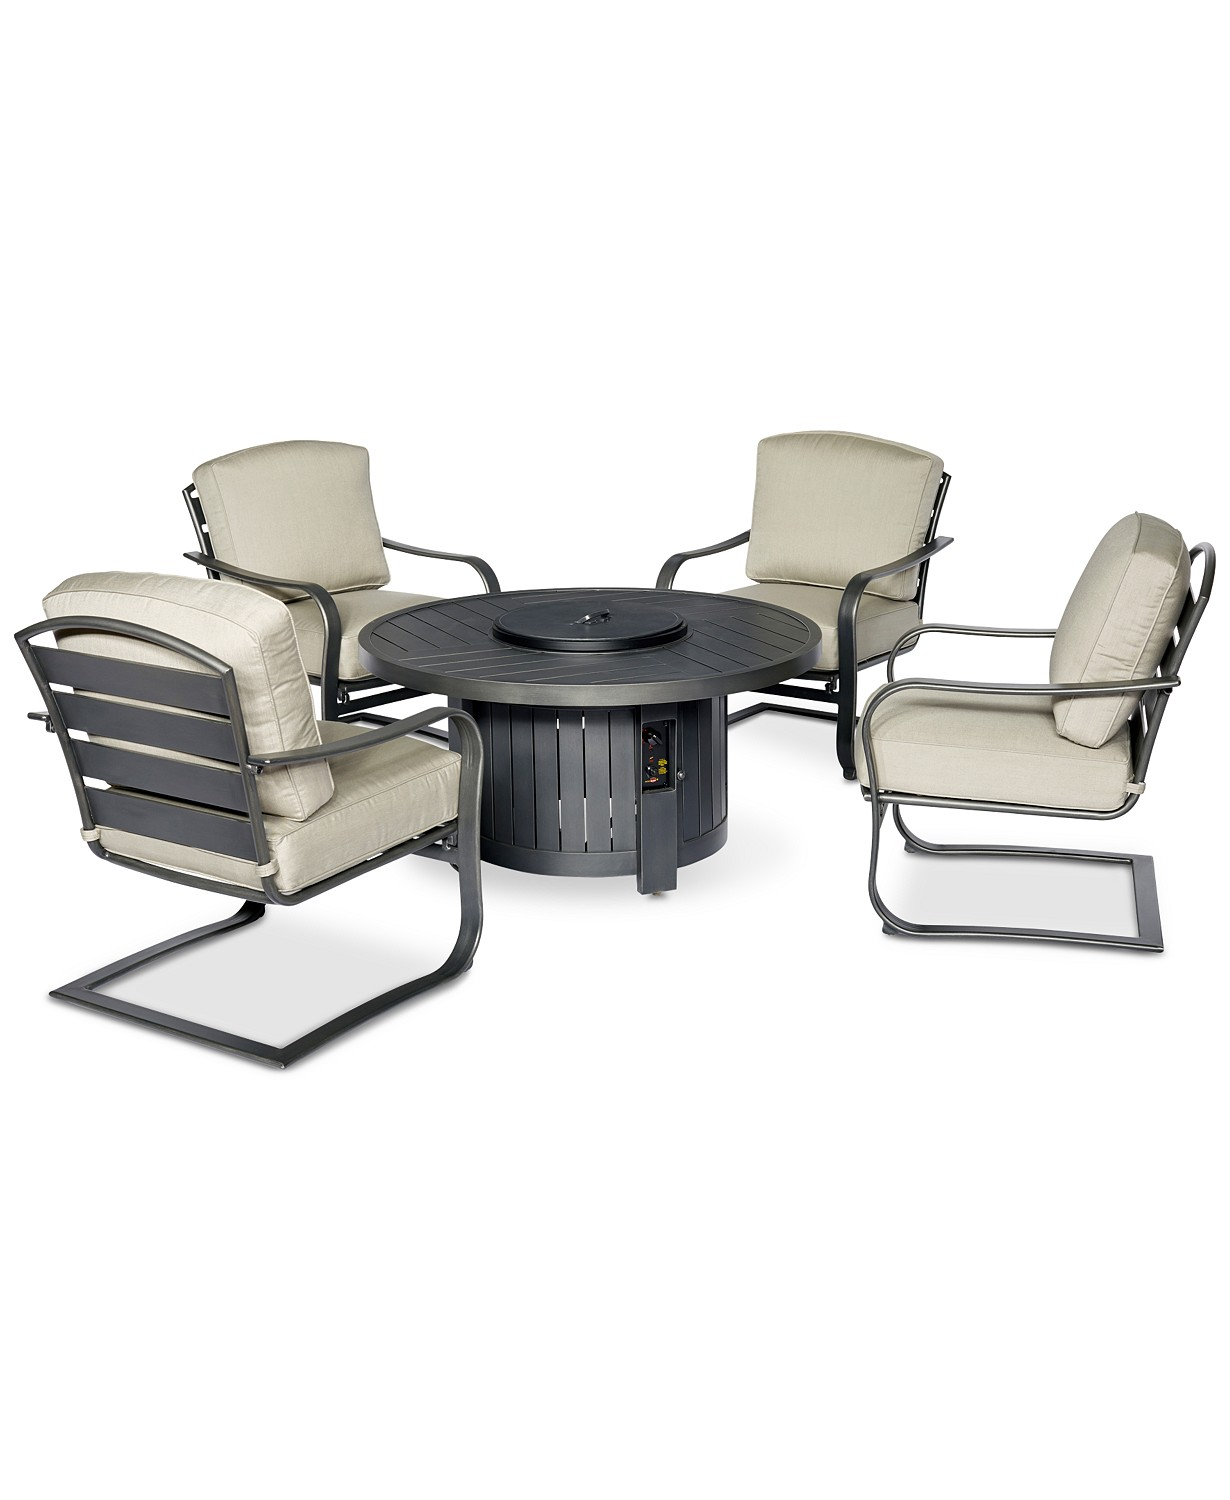 Marlough Round Fire Pit Chat Set